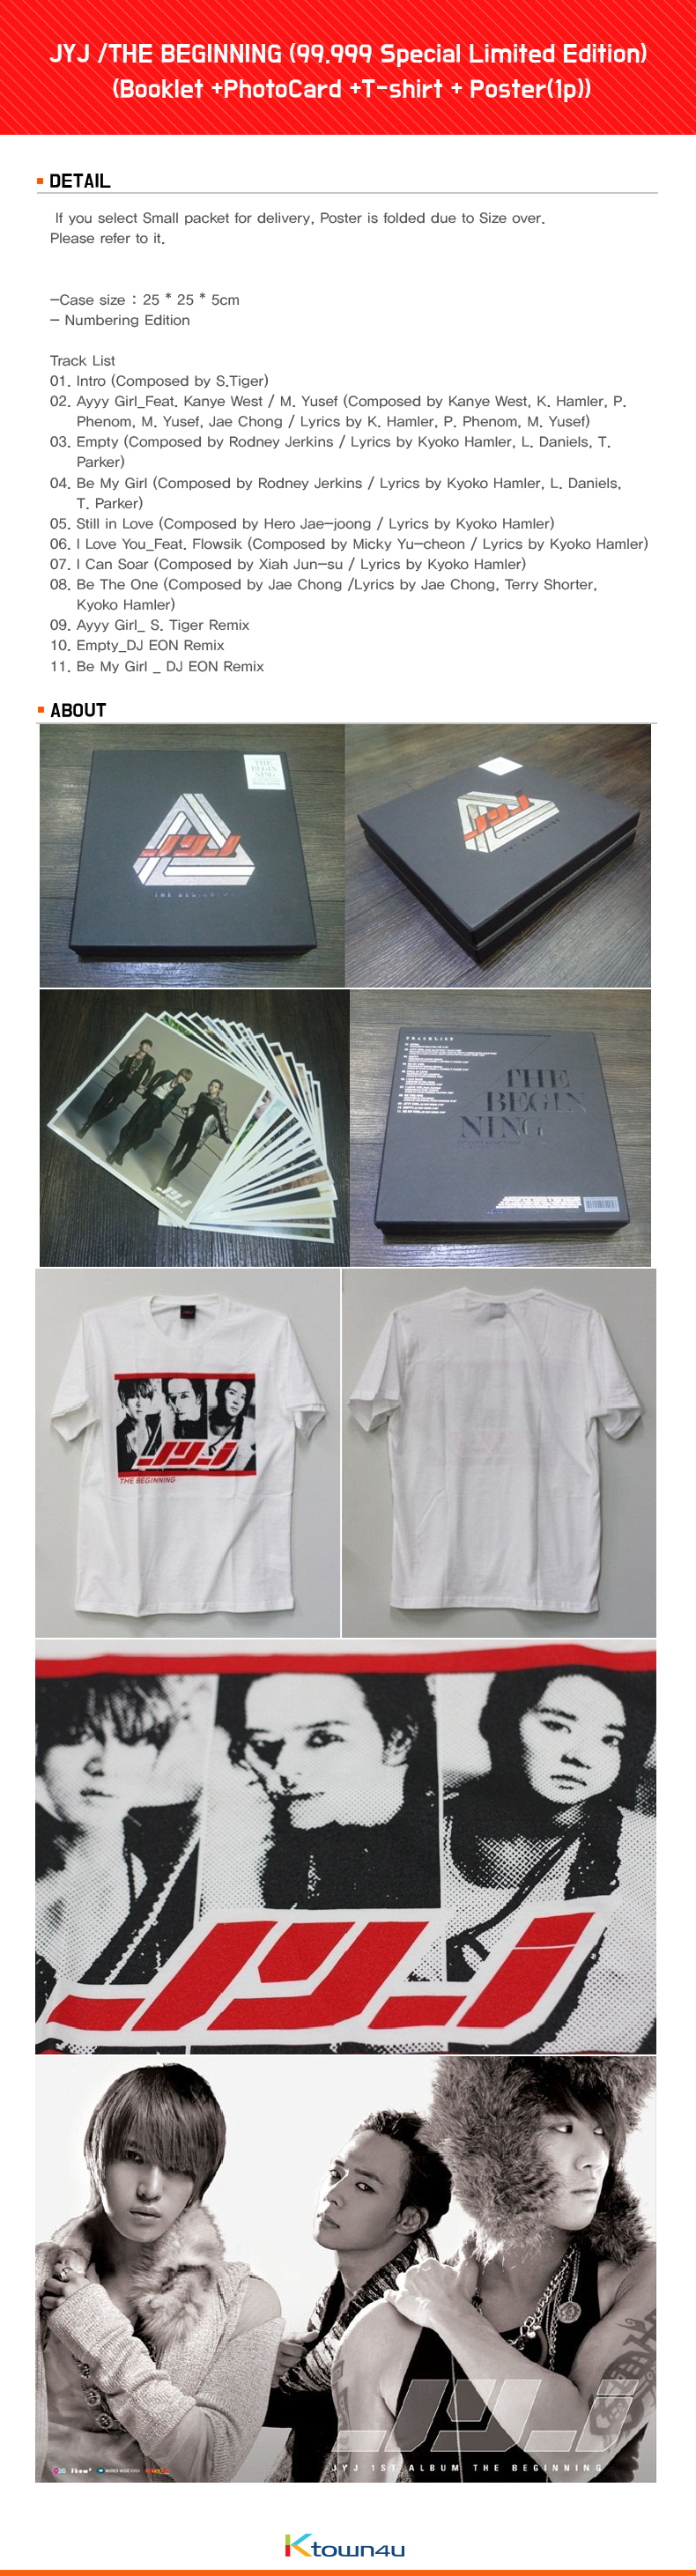 JYJ /THE BEGINNING (99,999 Special Limited Edition) (T-shirts included, Poster all sold out)